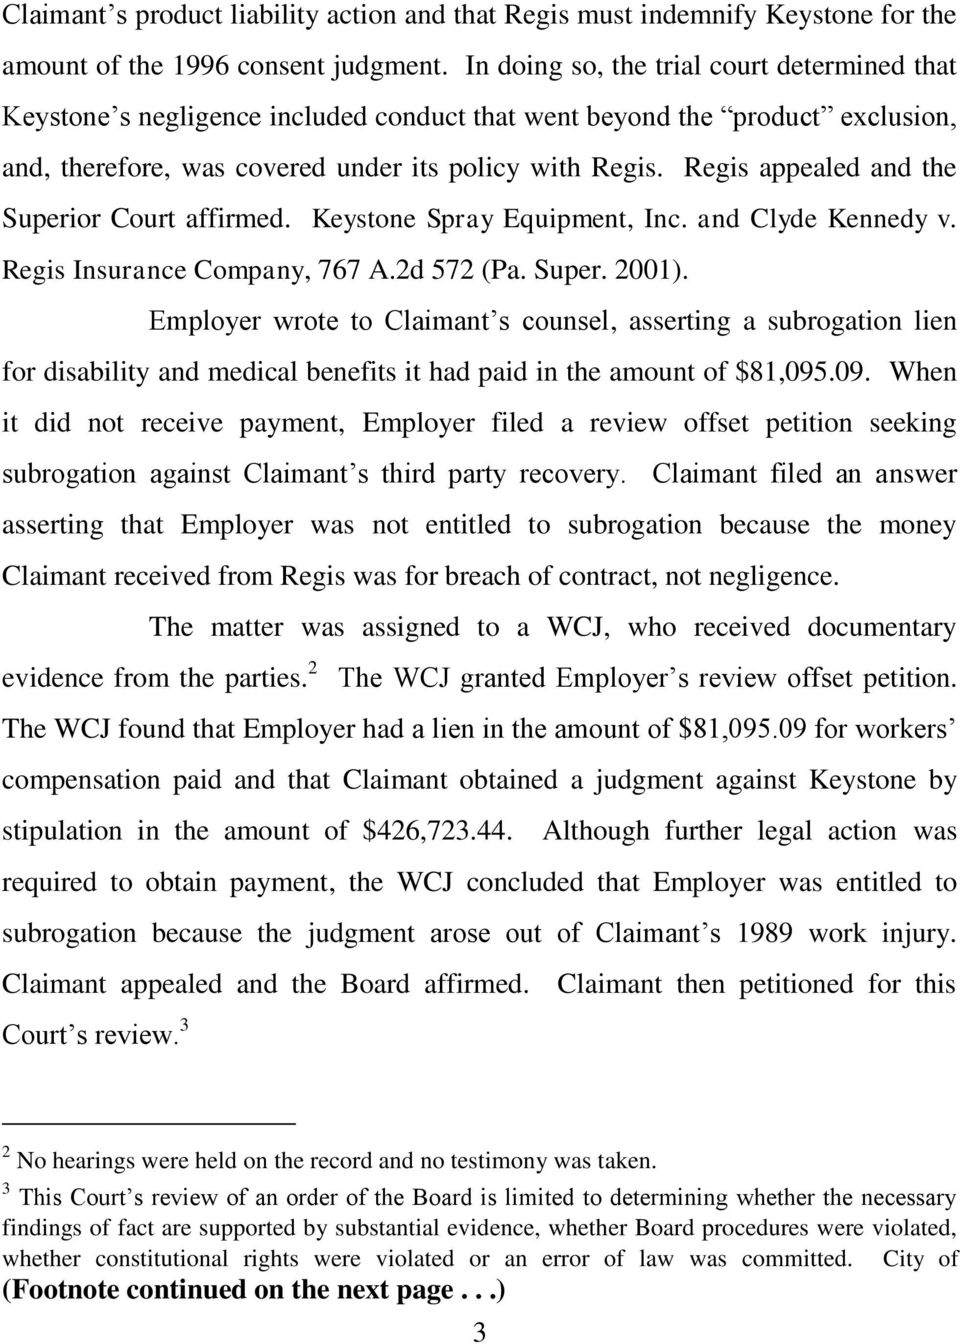 Regis appealed and the Superior Court affirmed. Keystone Spray Equipment, Inc. and Clyde Kennedy v. Regis Insurance Company, 767 A.2d 572 (Pa. Super. 2001).